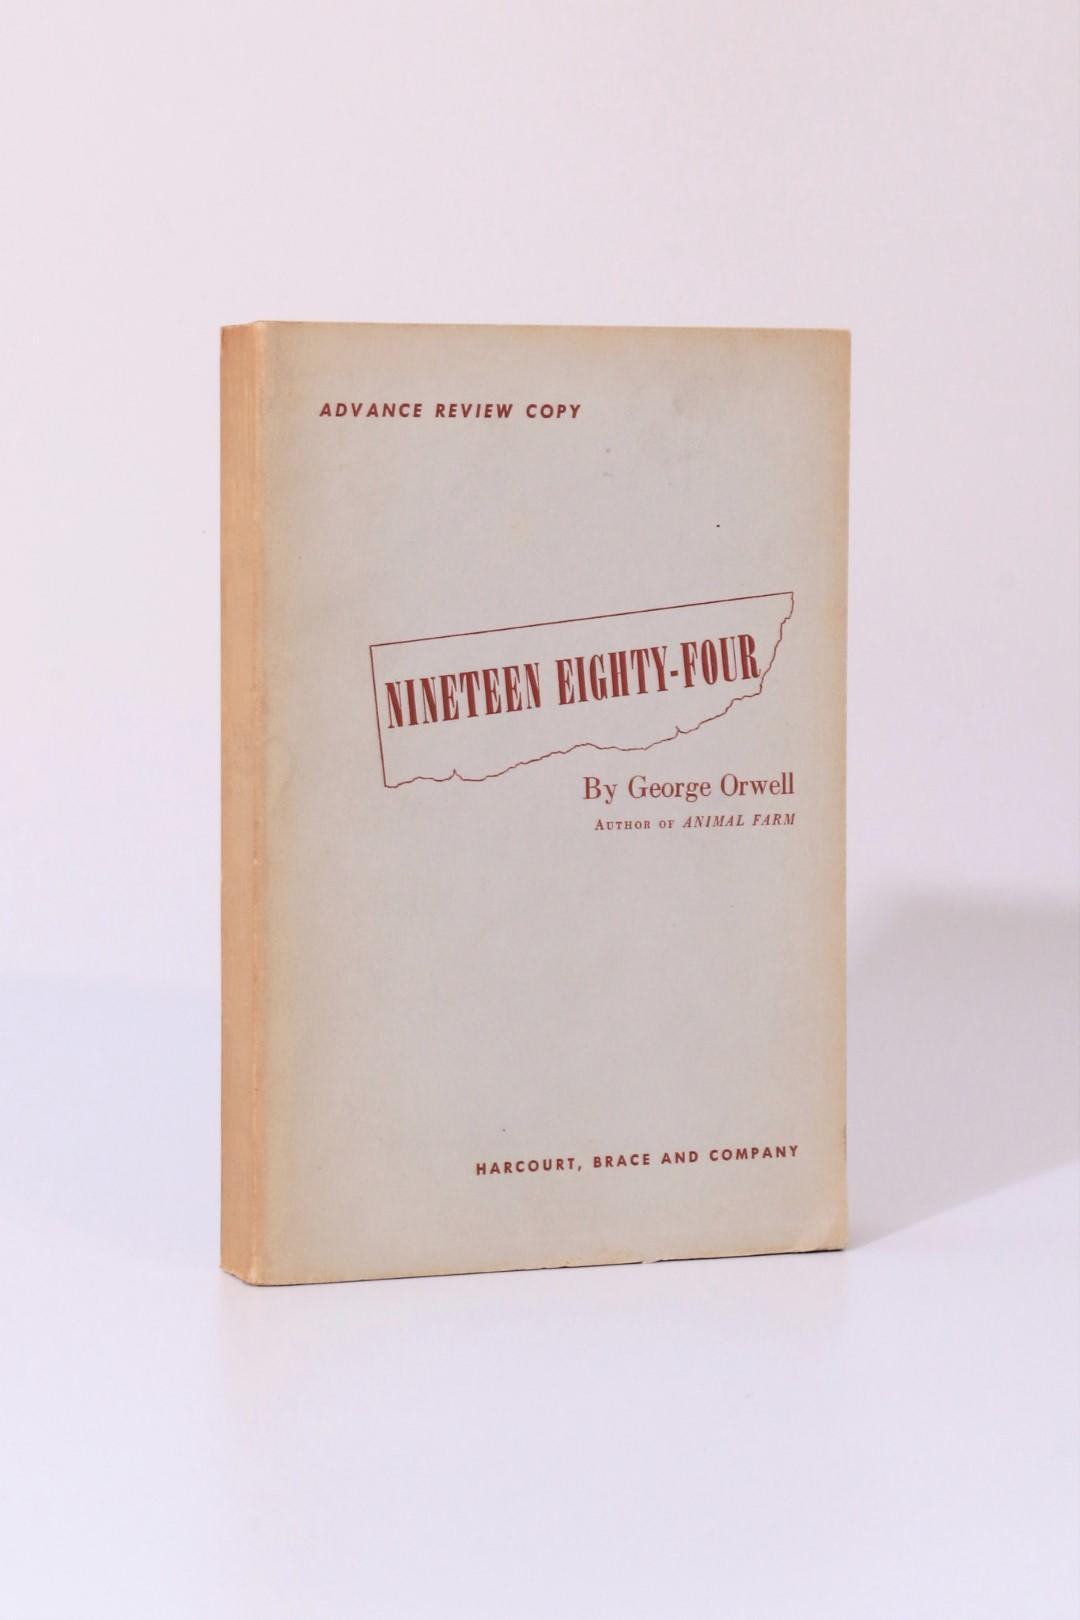 George Orwell - Nineteen Eighty-Four - Harcourt, Brace & Company, 1949, Proof.